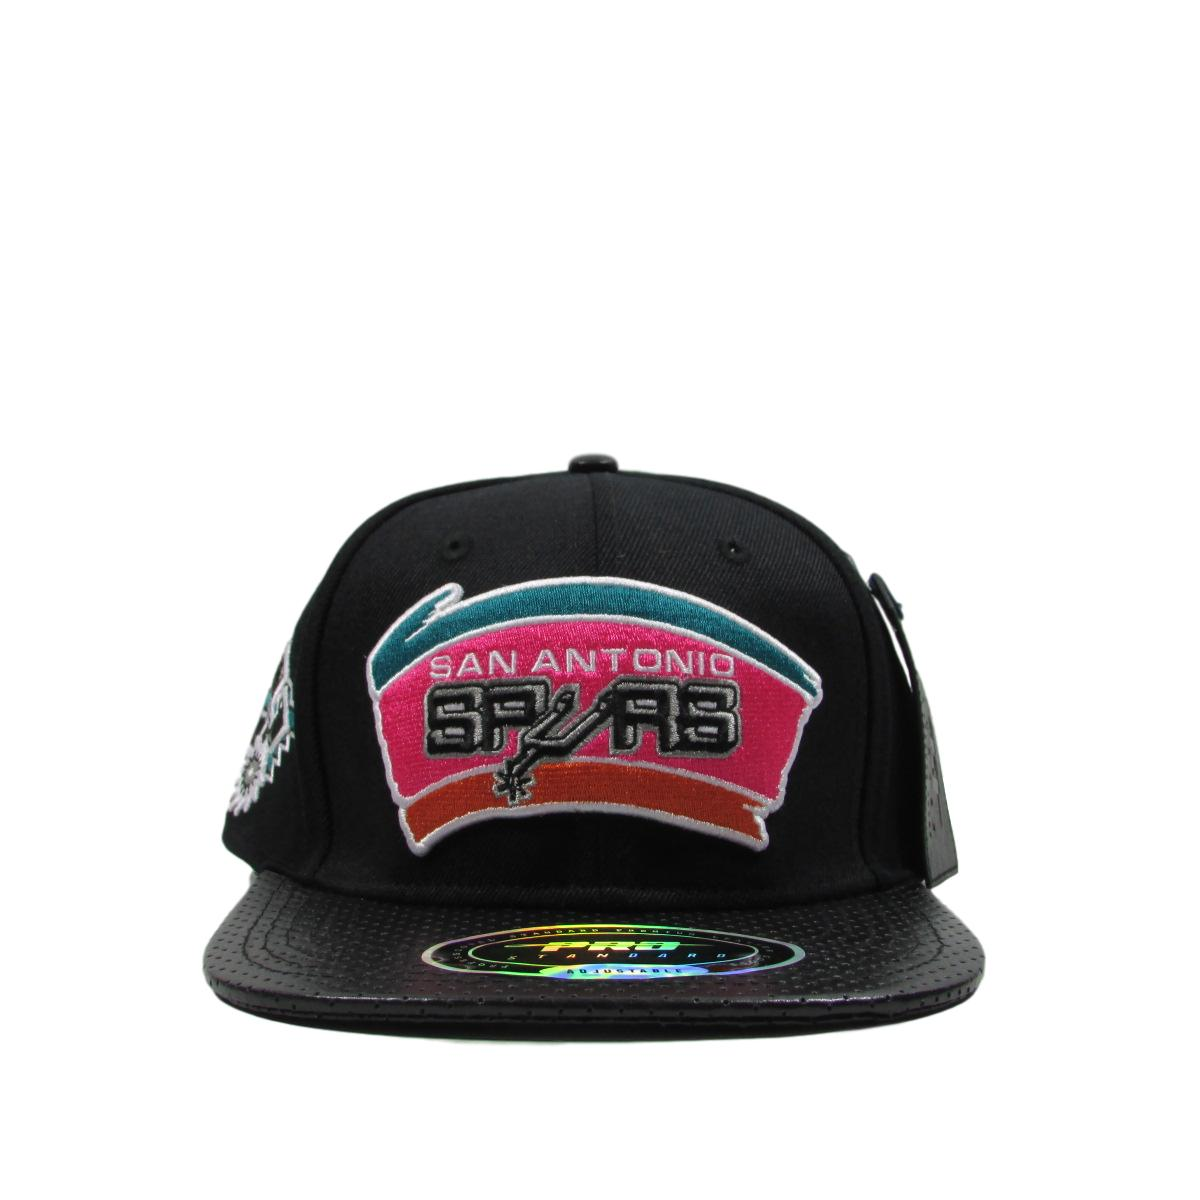 San Antonio Spurs 1989 Logo Leather Basketball Strapback Hat Pro Standard